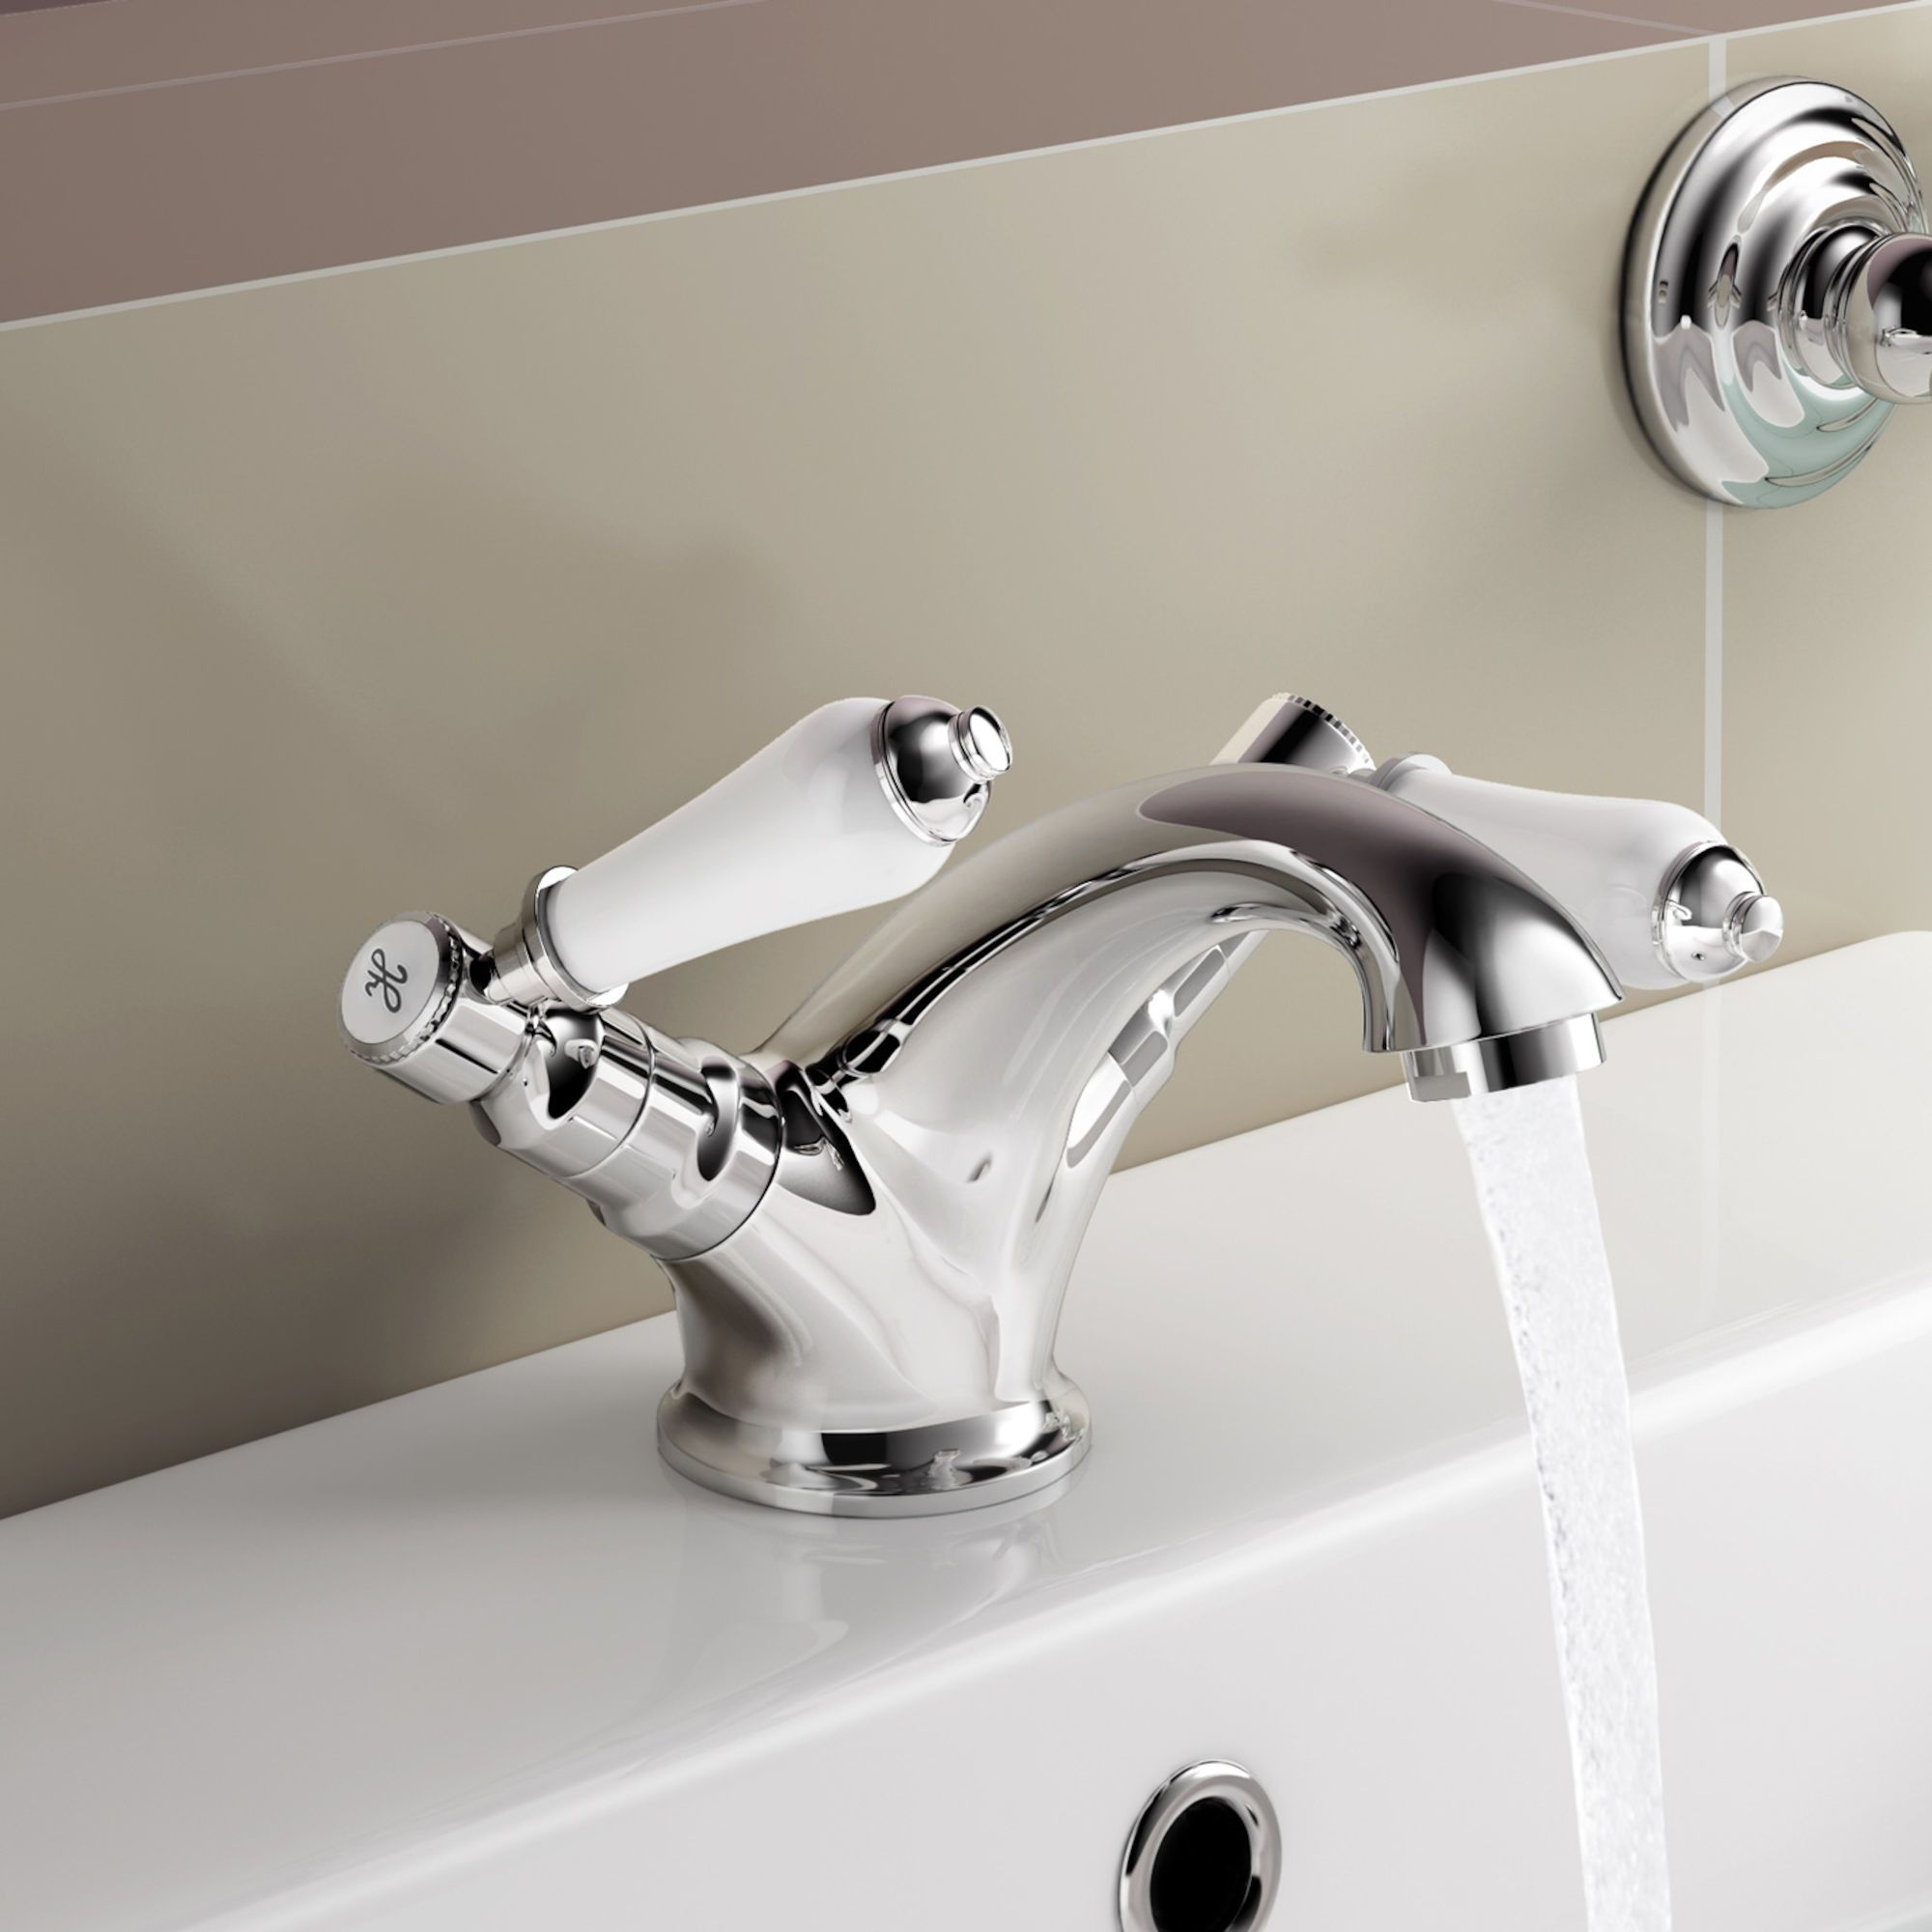 Regal Chrome Traditional Basin Sink Lever Mixer Tap